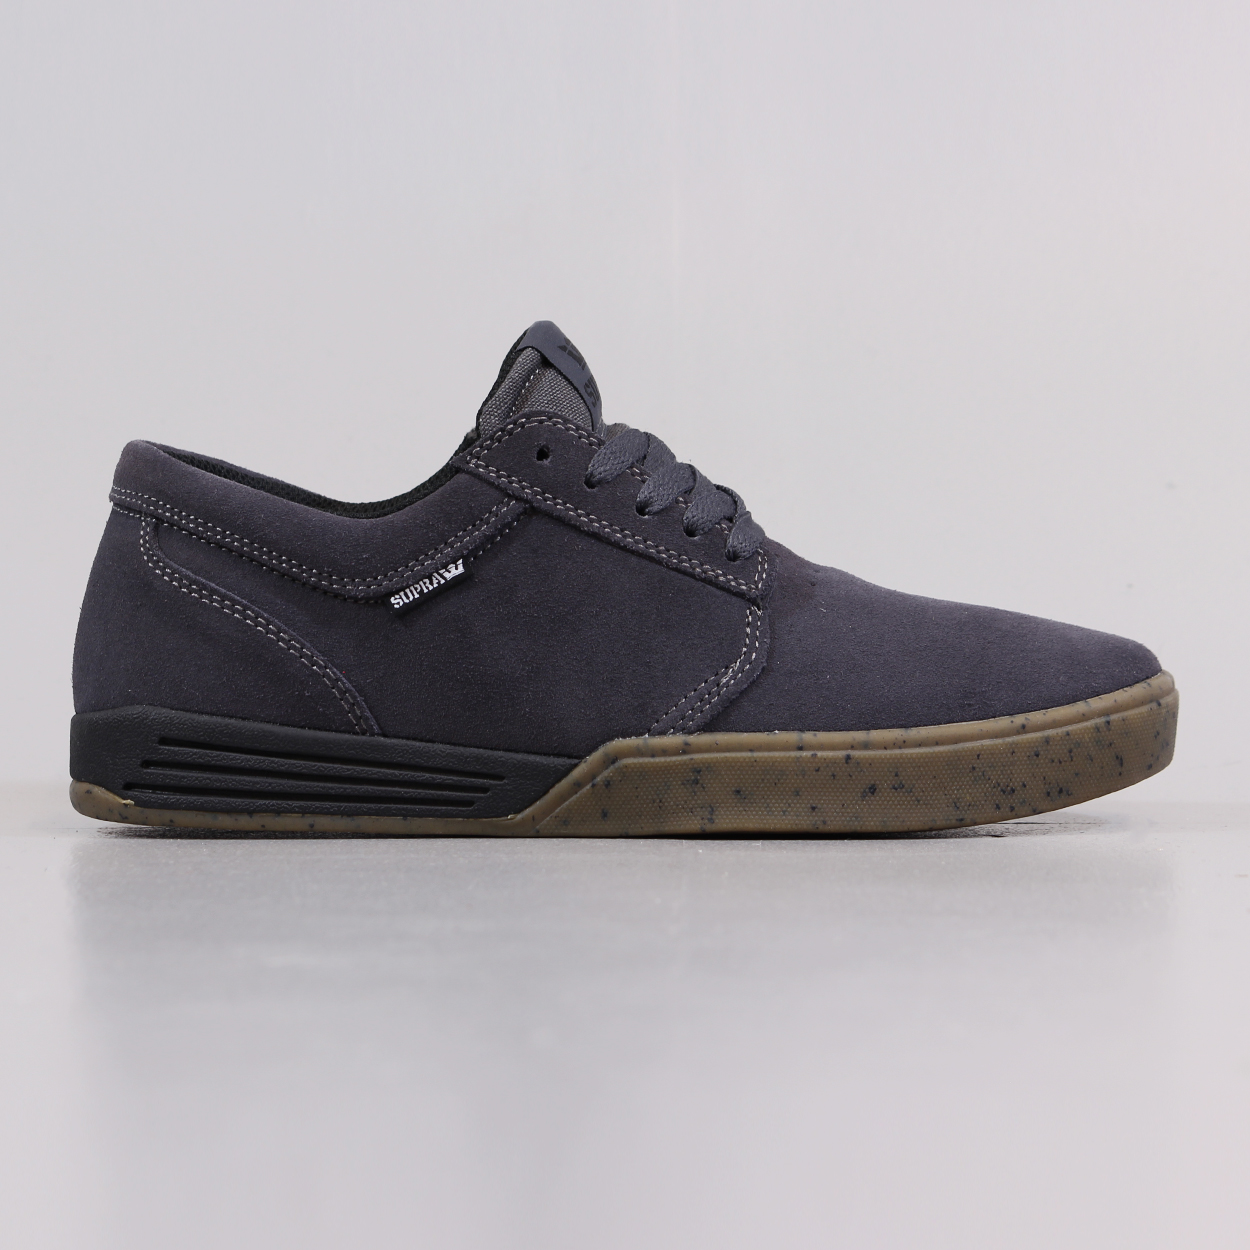 finest selection 10650 a0461 Supra Footwear Mens Hammer Skate Shoes Trainers Charcoal Grey £48.75